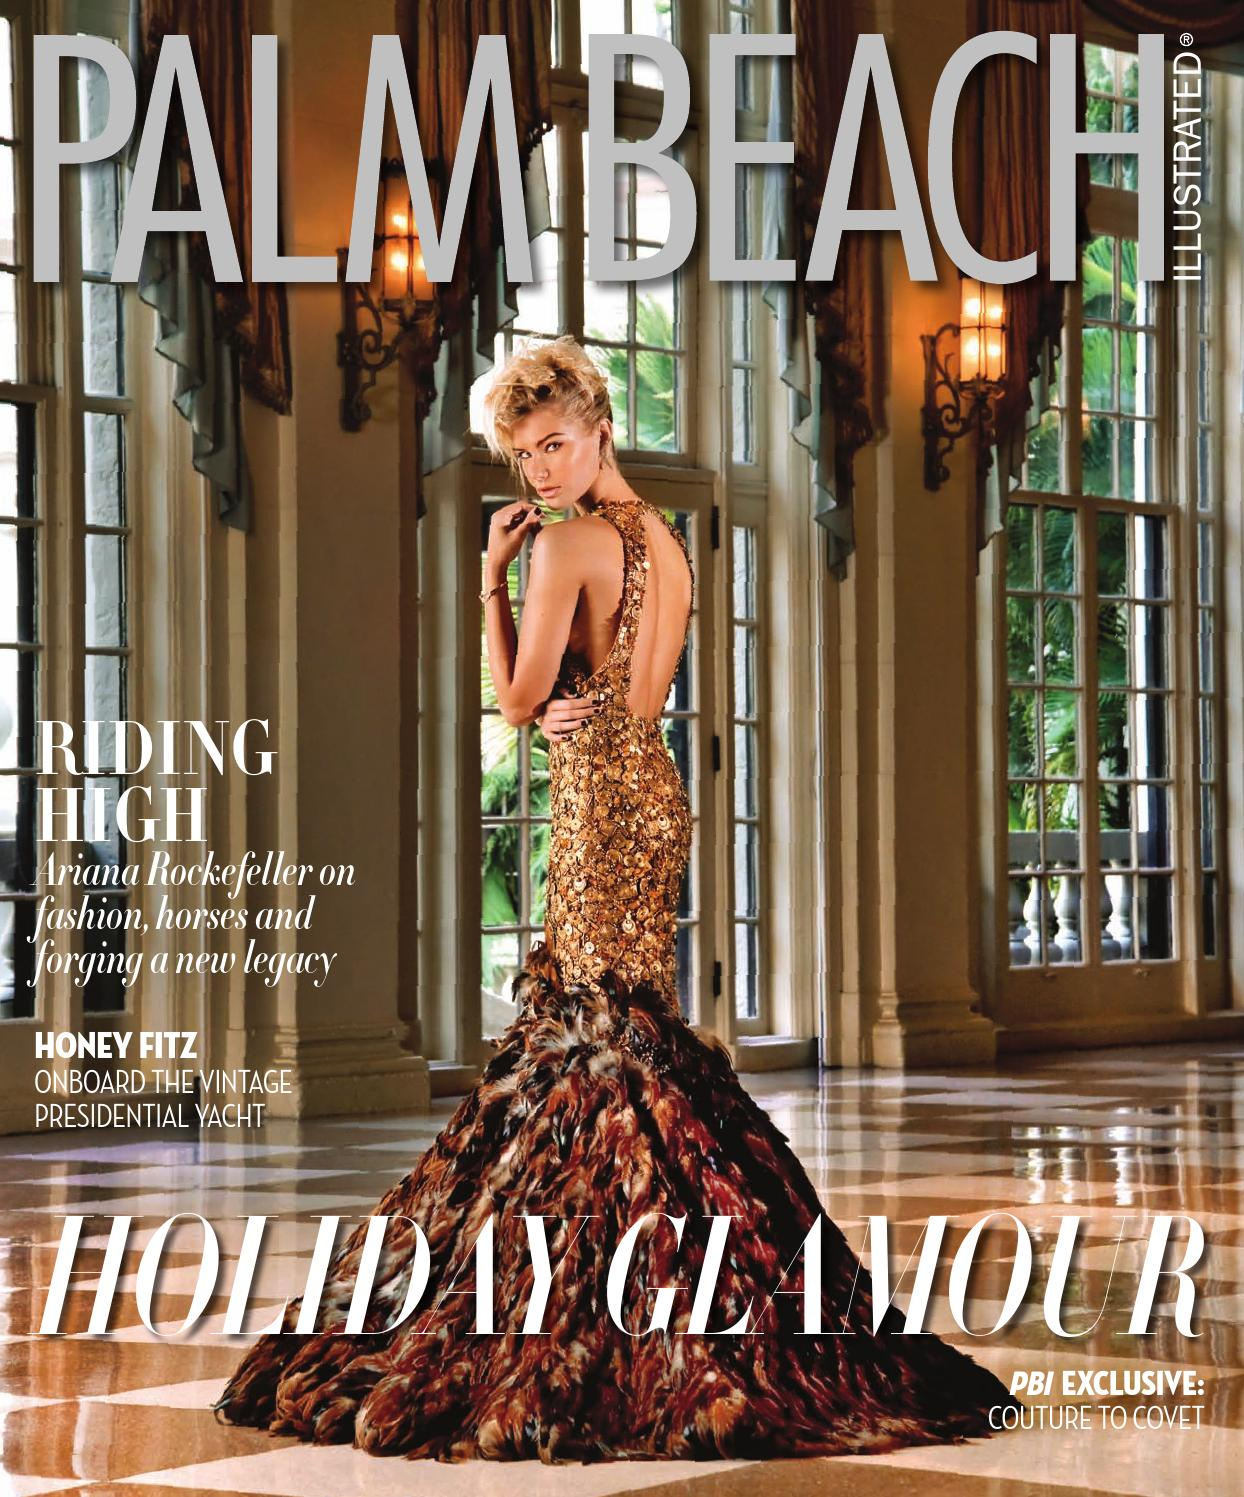 Palm Beach Illustrated December 2014 by Palm Beach Media Group - issuu